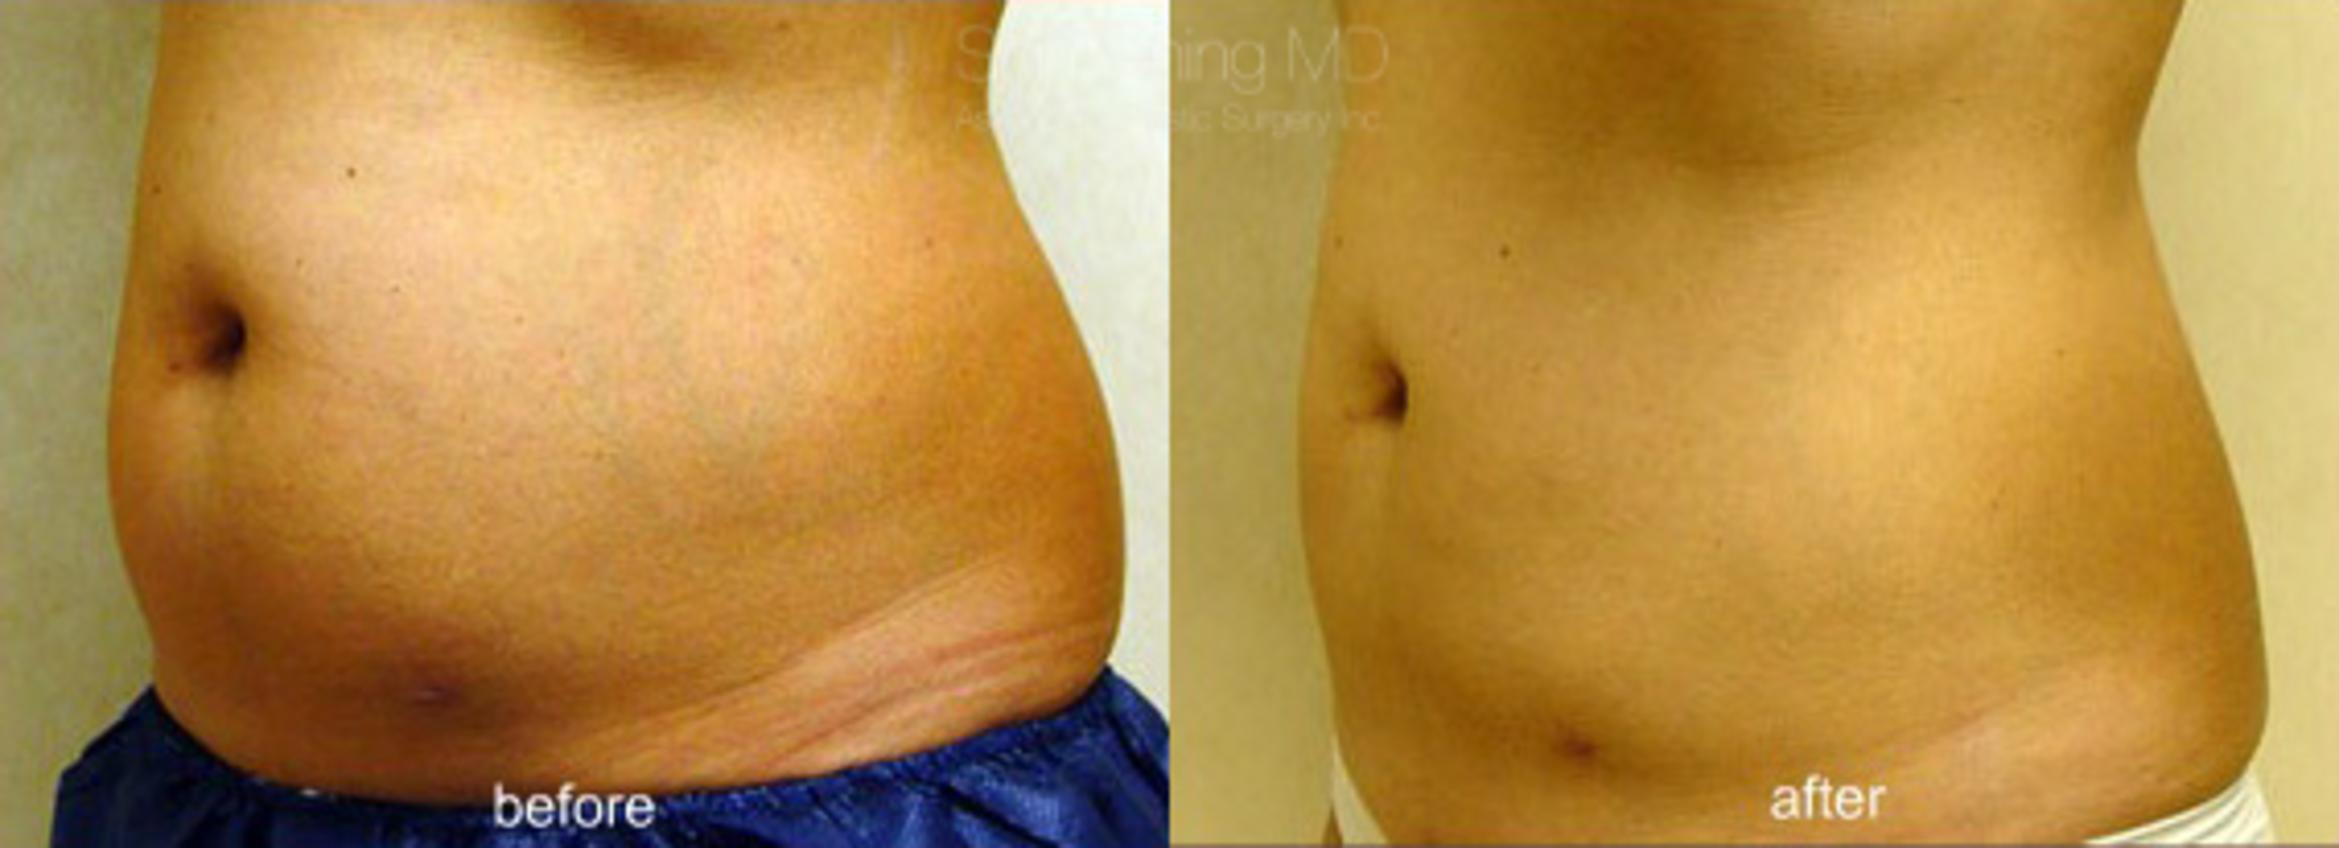 CoolSculpting Case 107 Before & After View #1 | Honolulu, HI | Shim Ching, MD: Asia Pacific Plastic Surgery